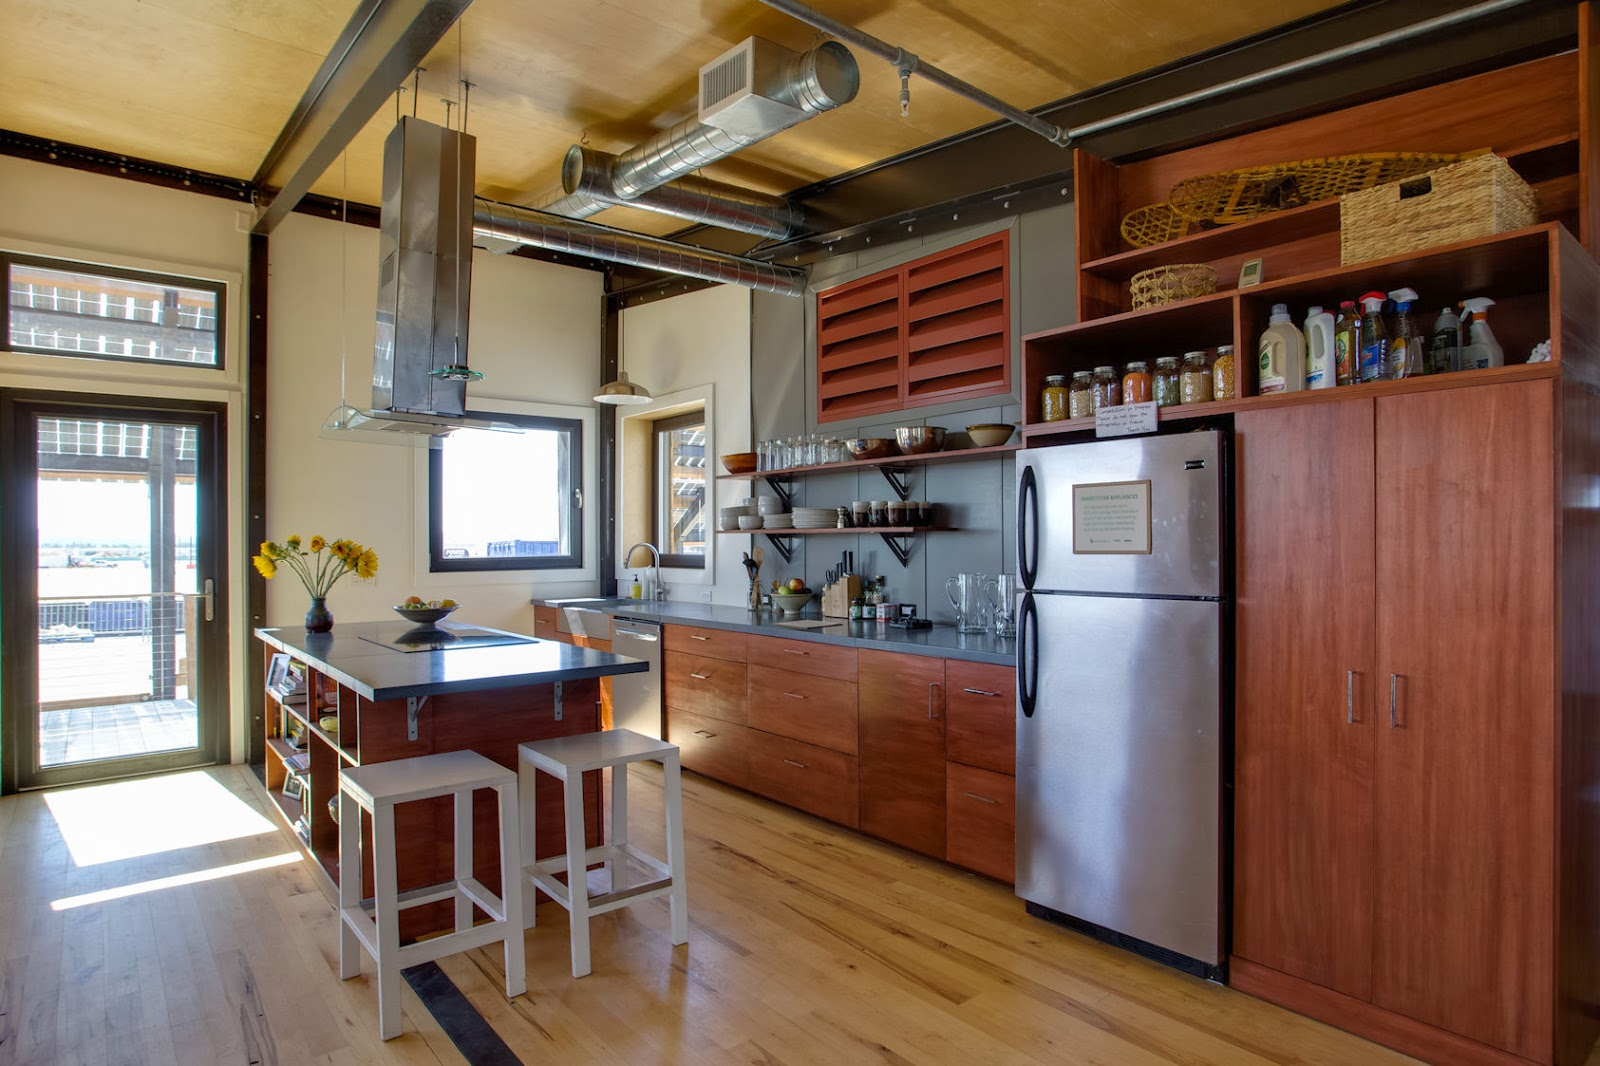 Holistic Approaches To Sustainability That Ive Seen Incorporating Environmental Economic And Social Responsibility Their InSite House Is A Charming